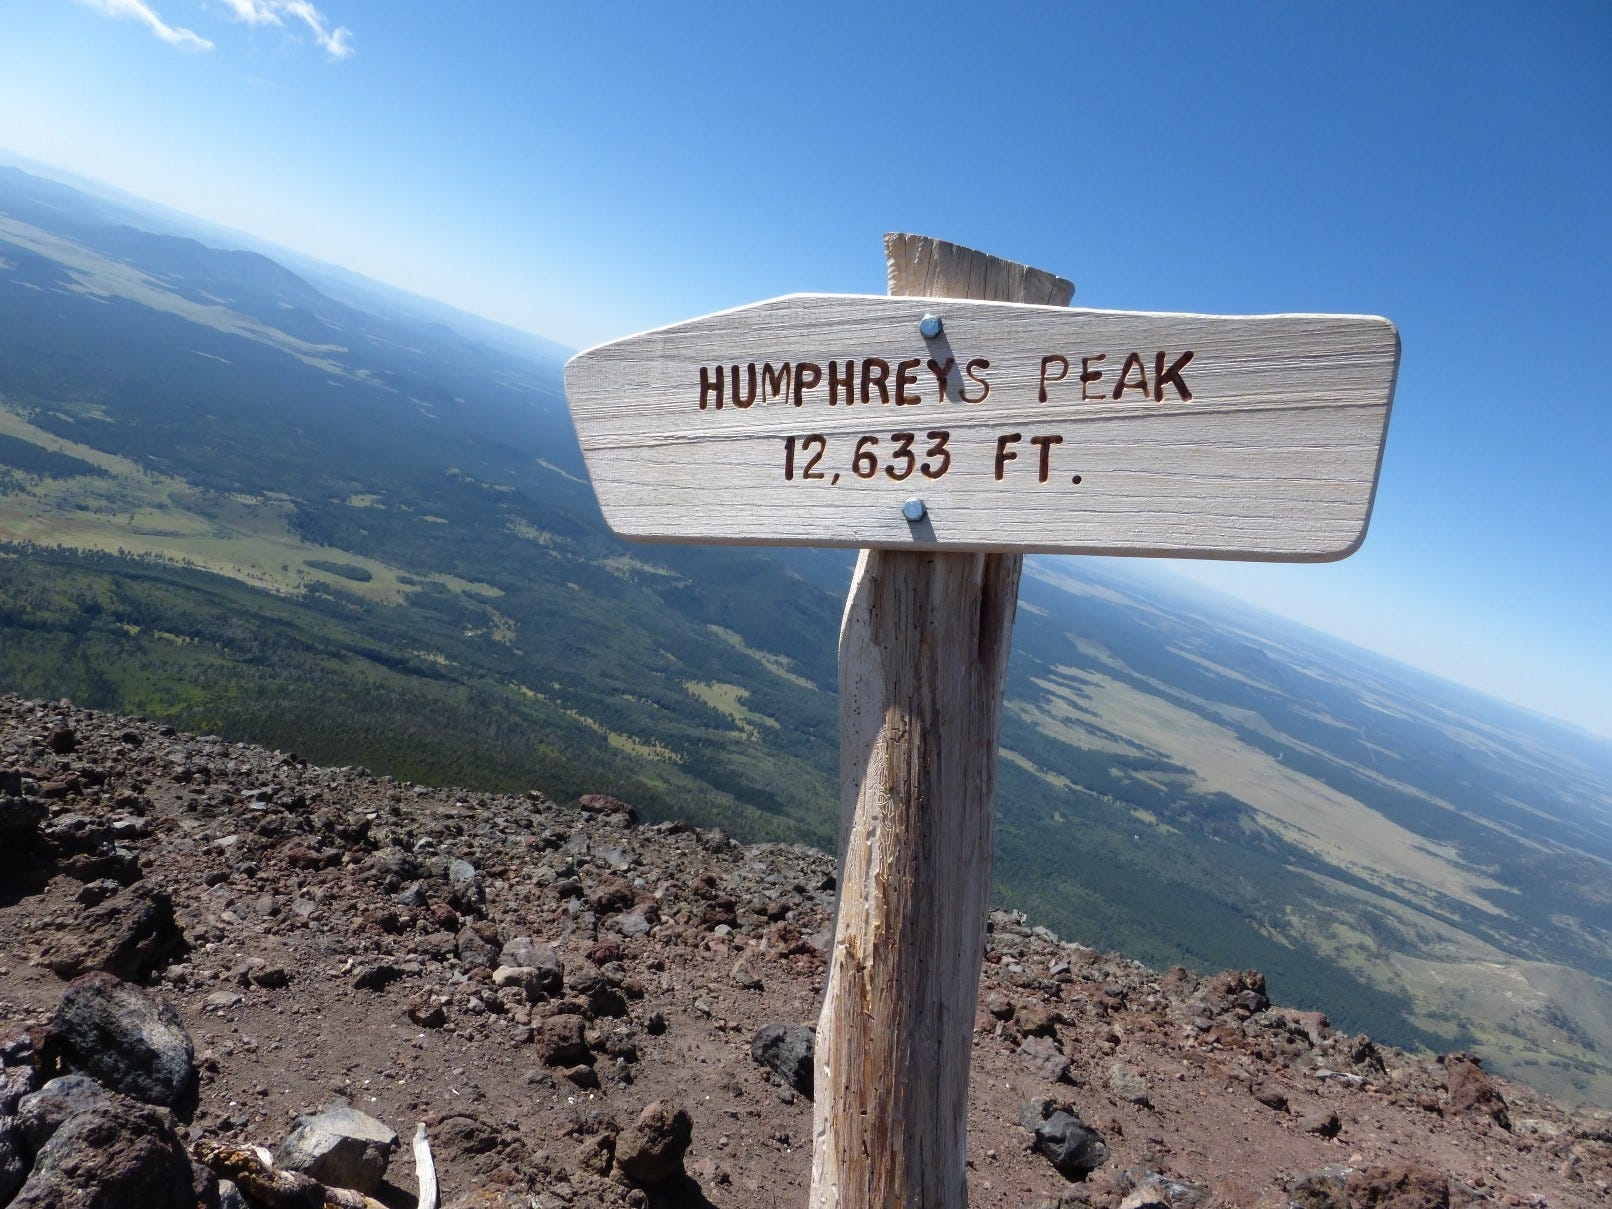 Views from the summit of Humphreys Peak north of Flagstaff extend to the Painted Desert and Grand Canyon.